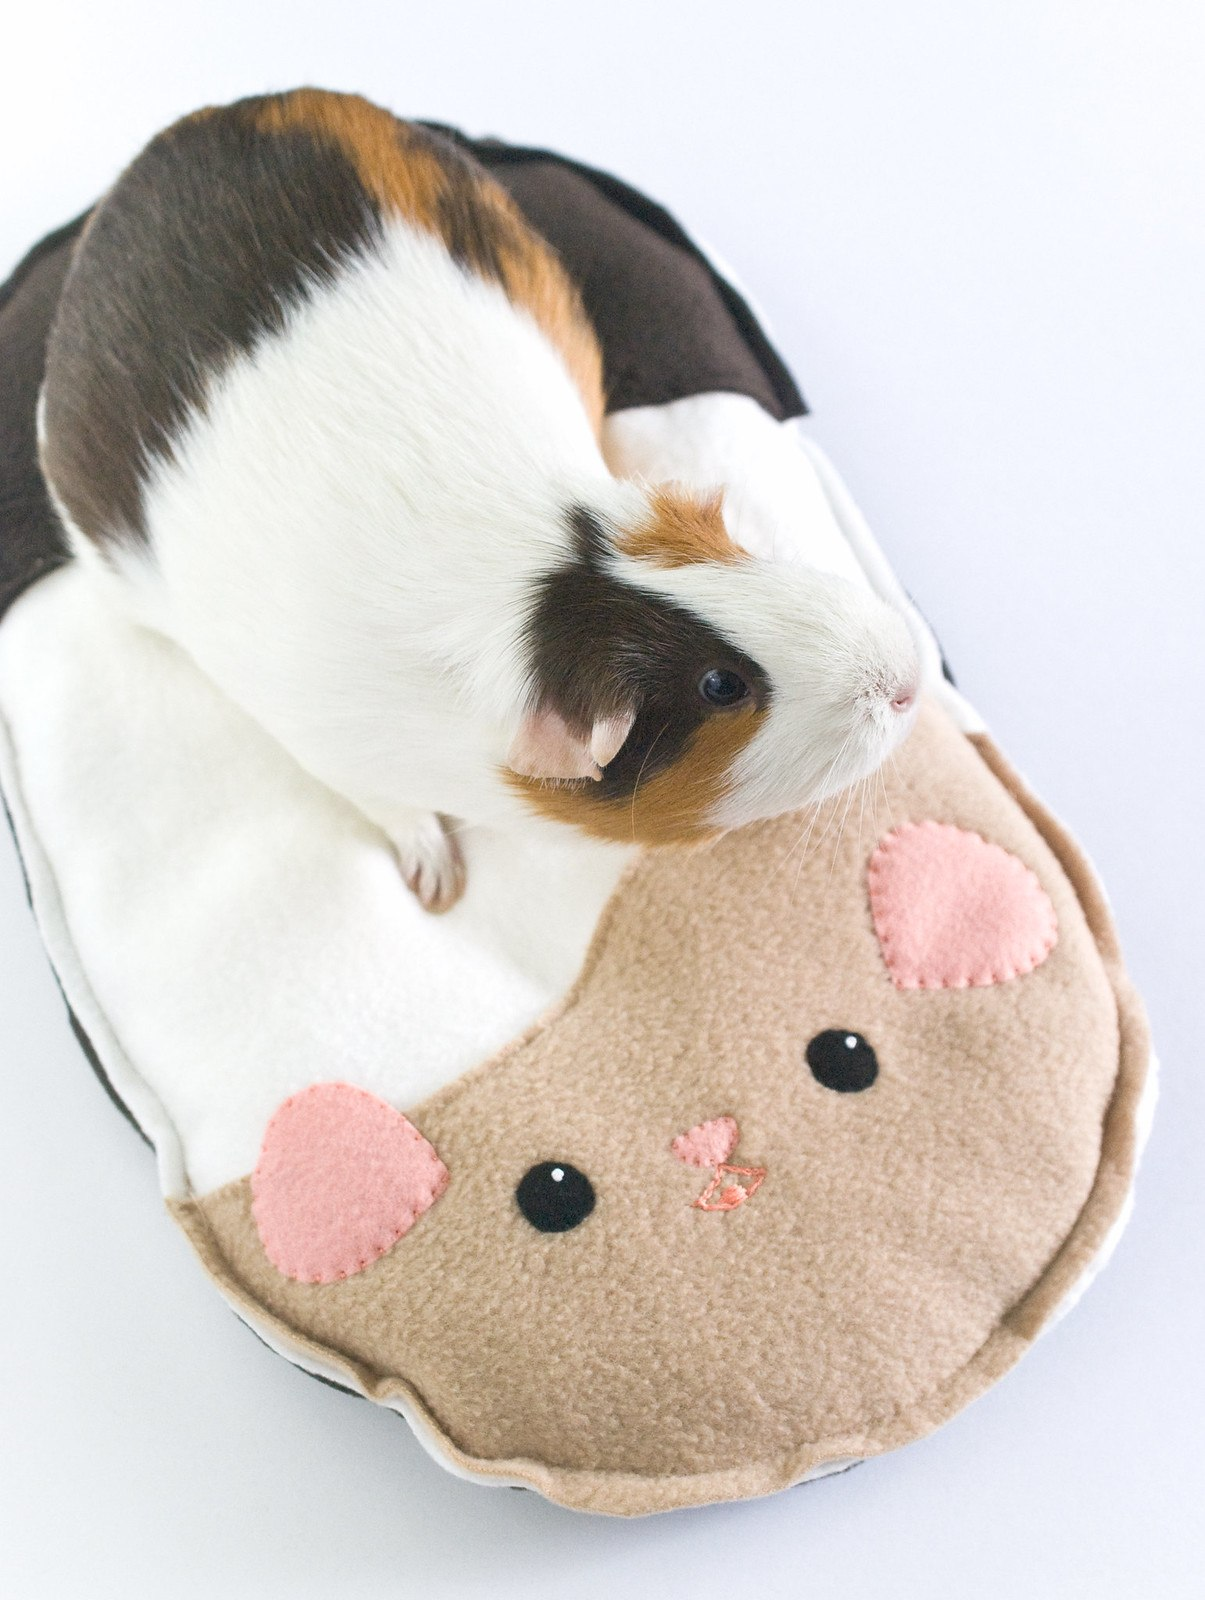 Piggie Shaped DIY Guinea Pig Bed Plans from Wild Olive